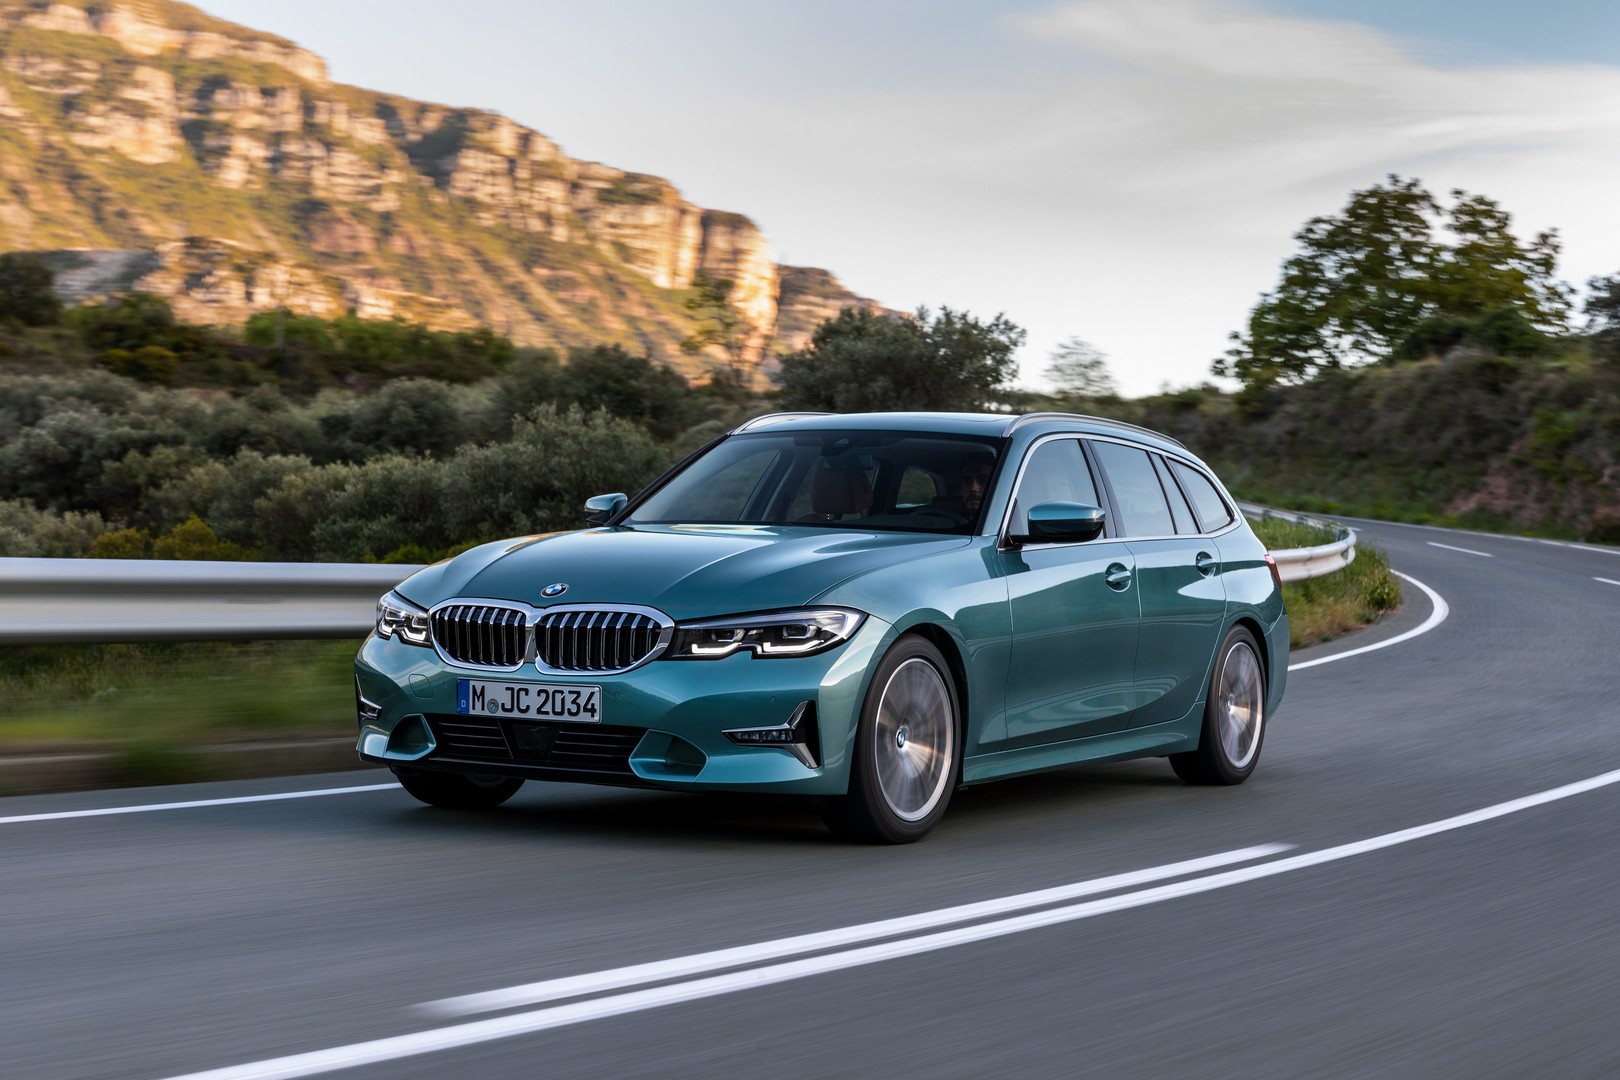 2020 BMW G21 3 Series Touring is Here